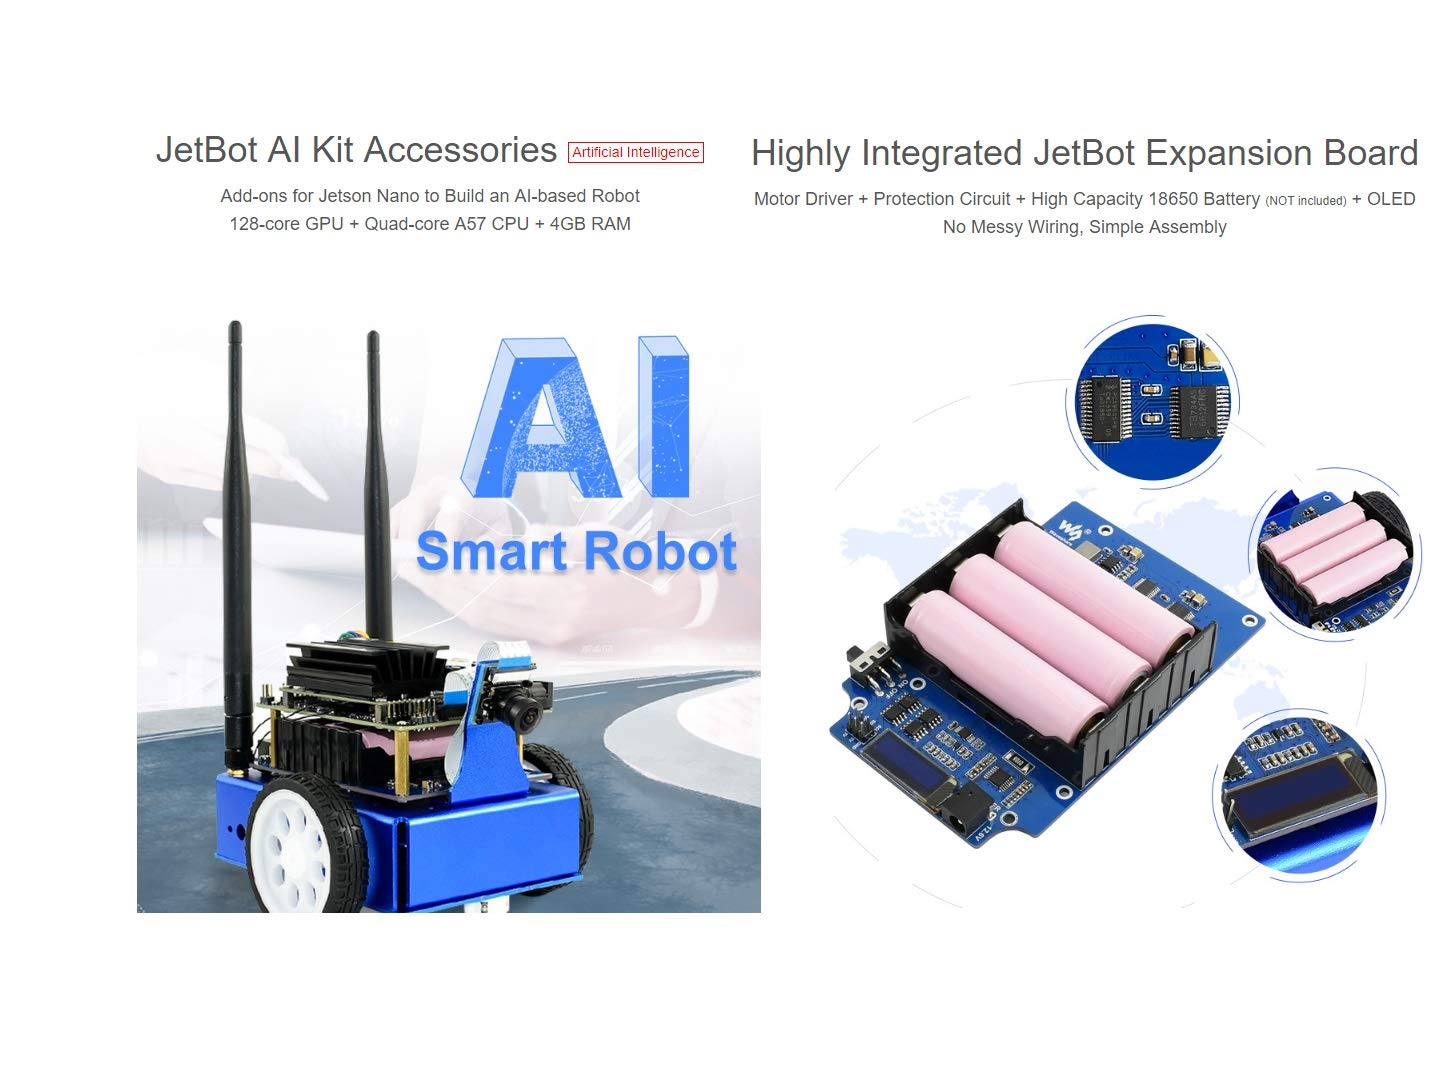 Amazon com: JetBot AI Kit Accessories Add-ons for NVIDIA